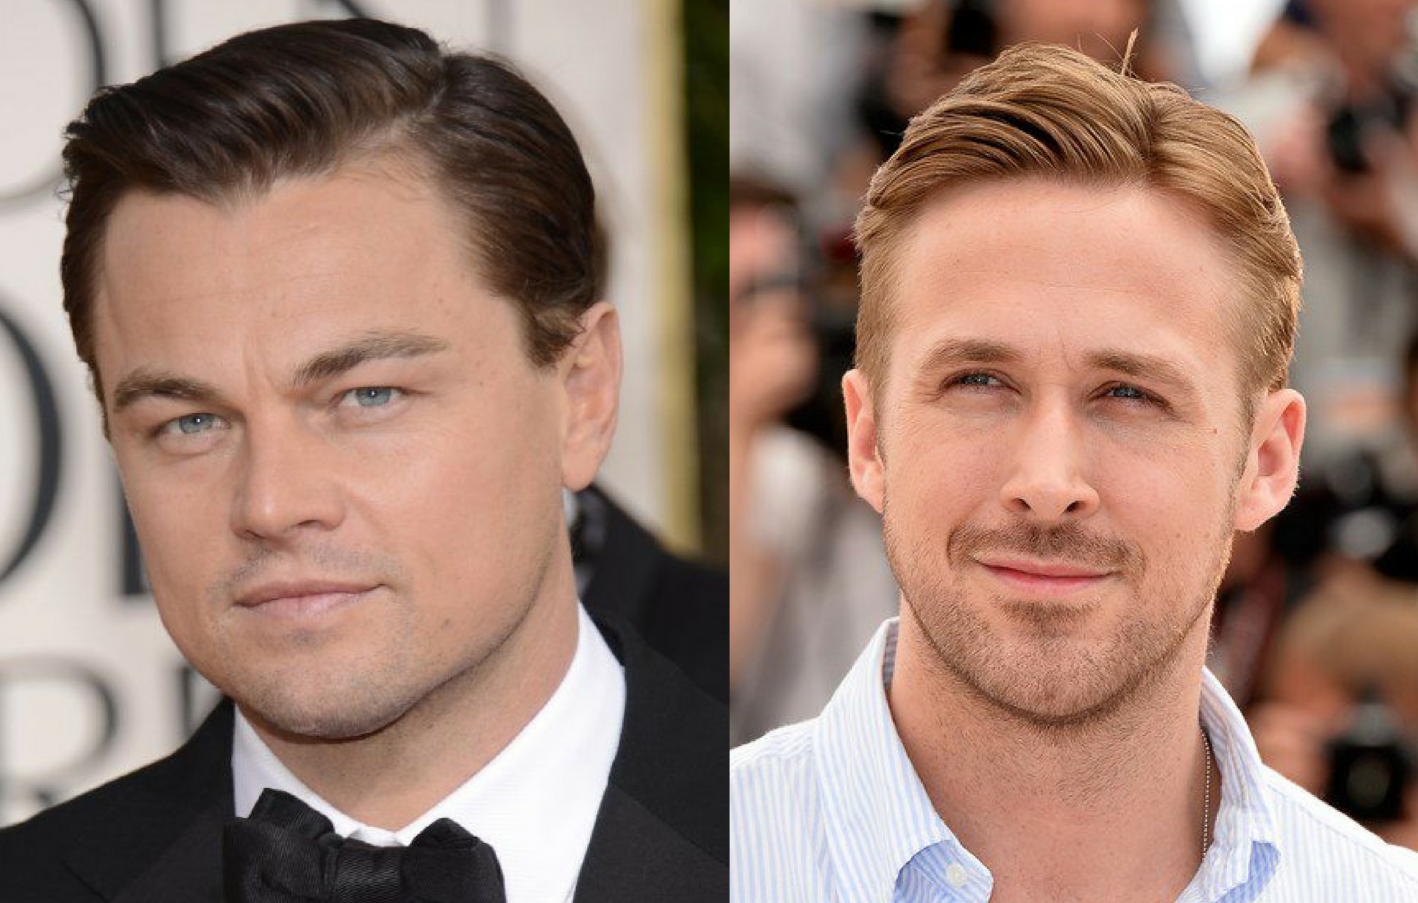 summer hairstyles for men, podcast